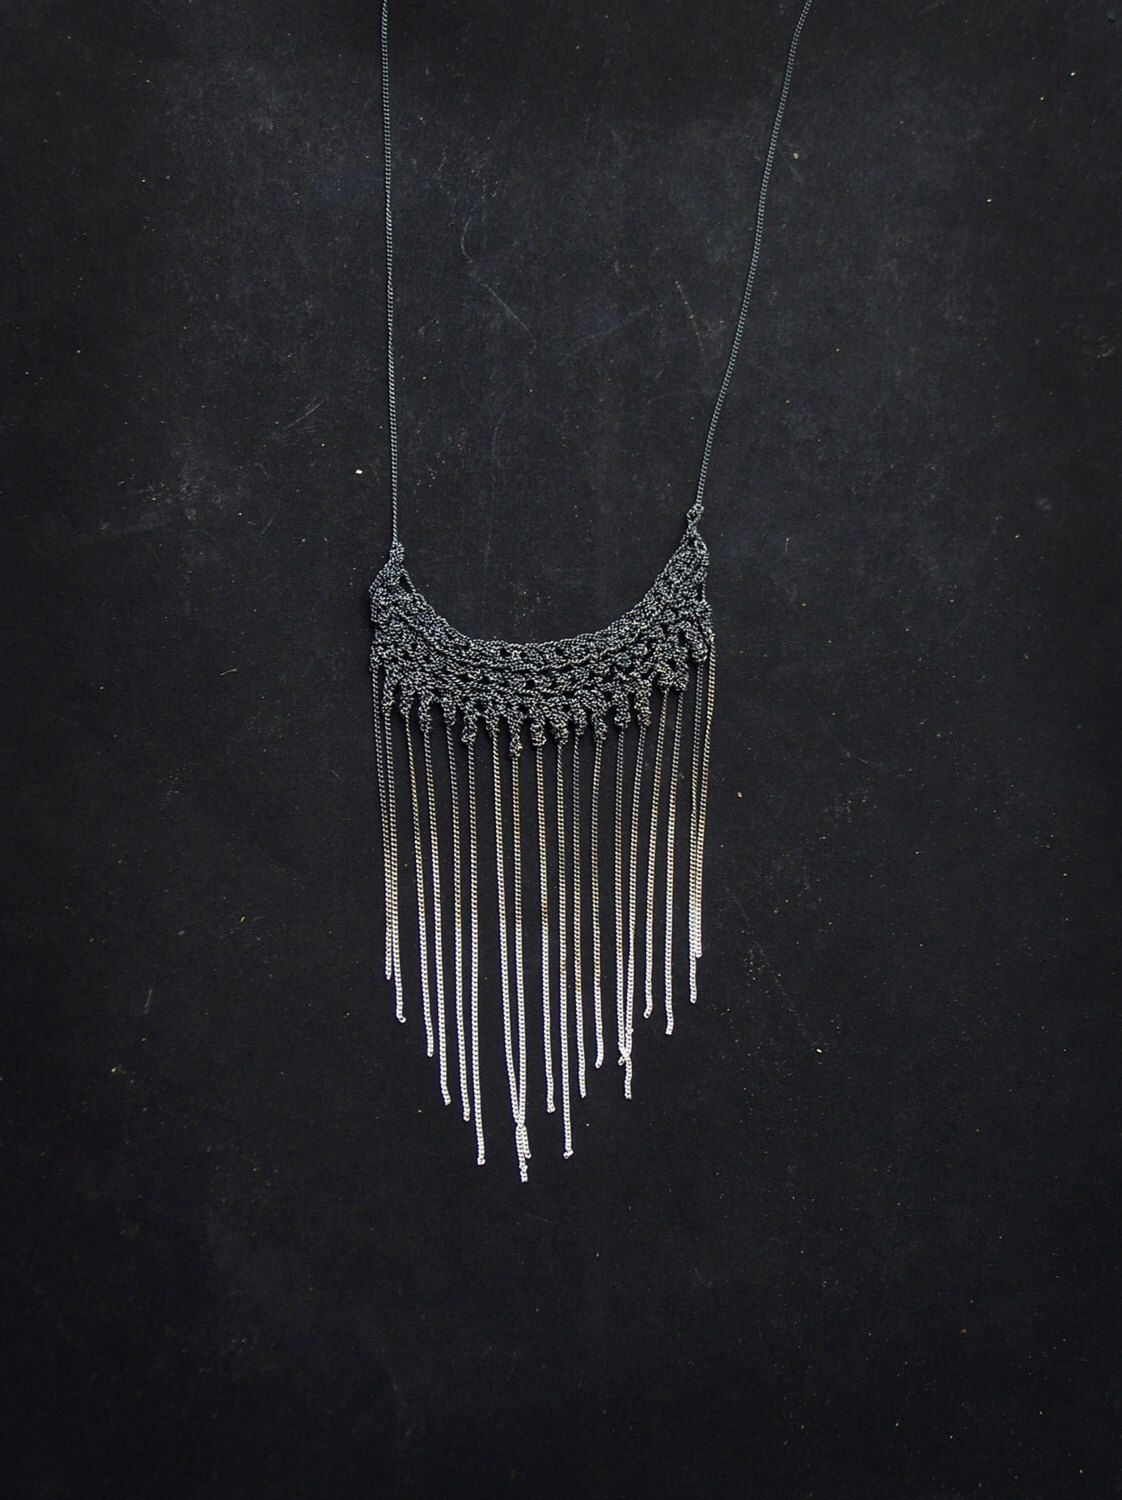 washed gradient 925 silver crochet fringe necklace, handmade contemporary jewelry by PetiteMortShop on Etsy https://www.etsy.com/listing/122158657/washed-gradient-925-silver-crochet